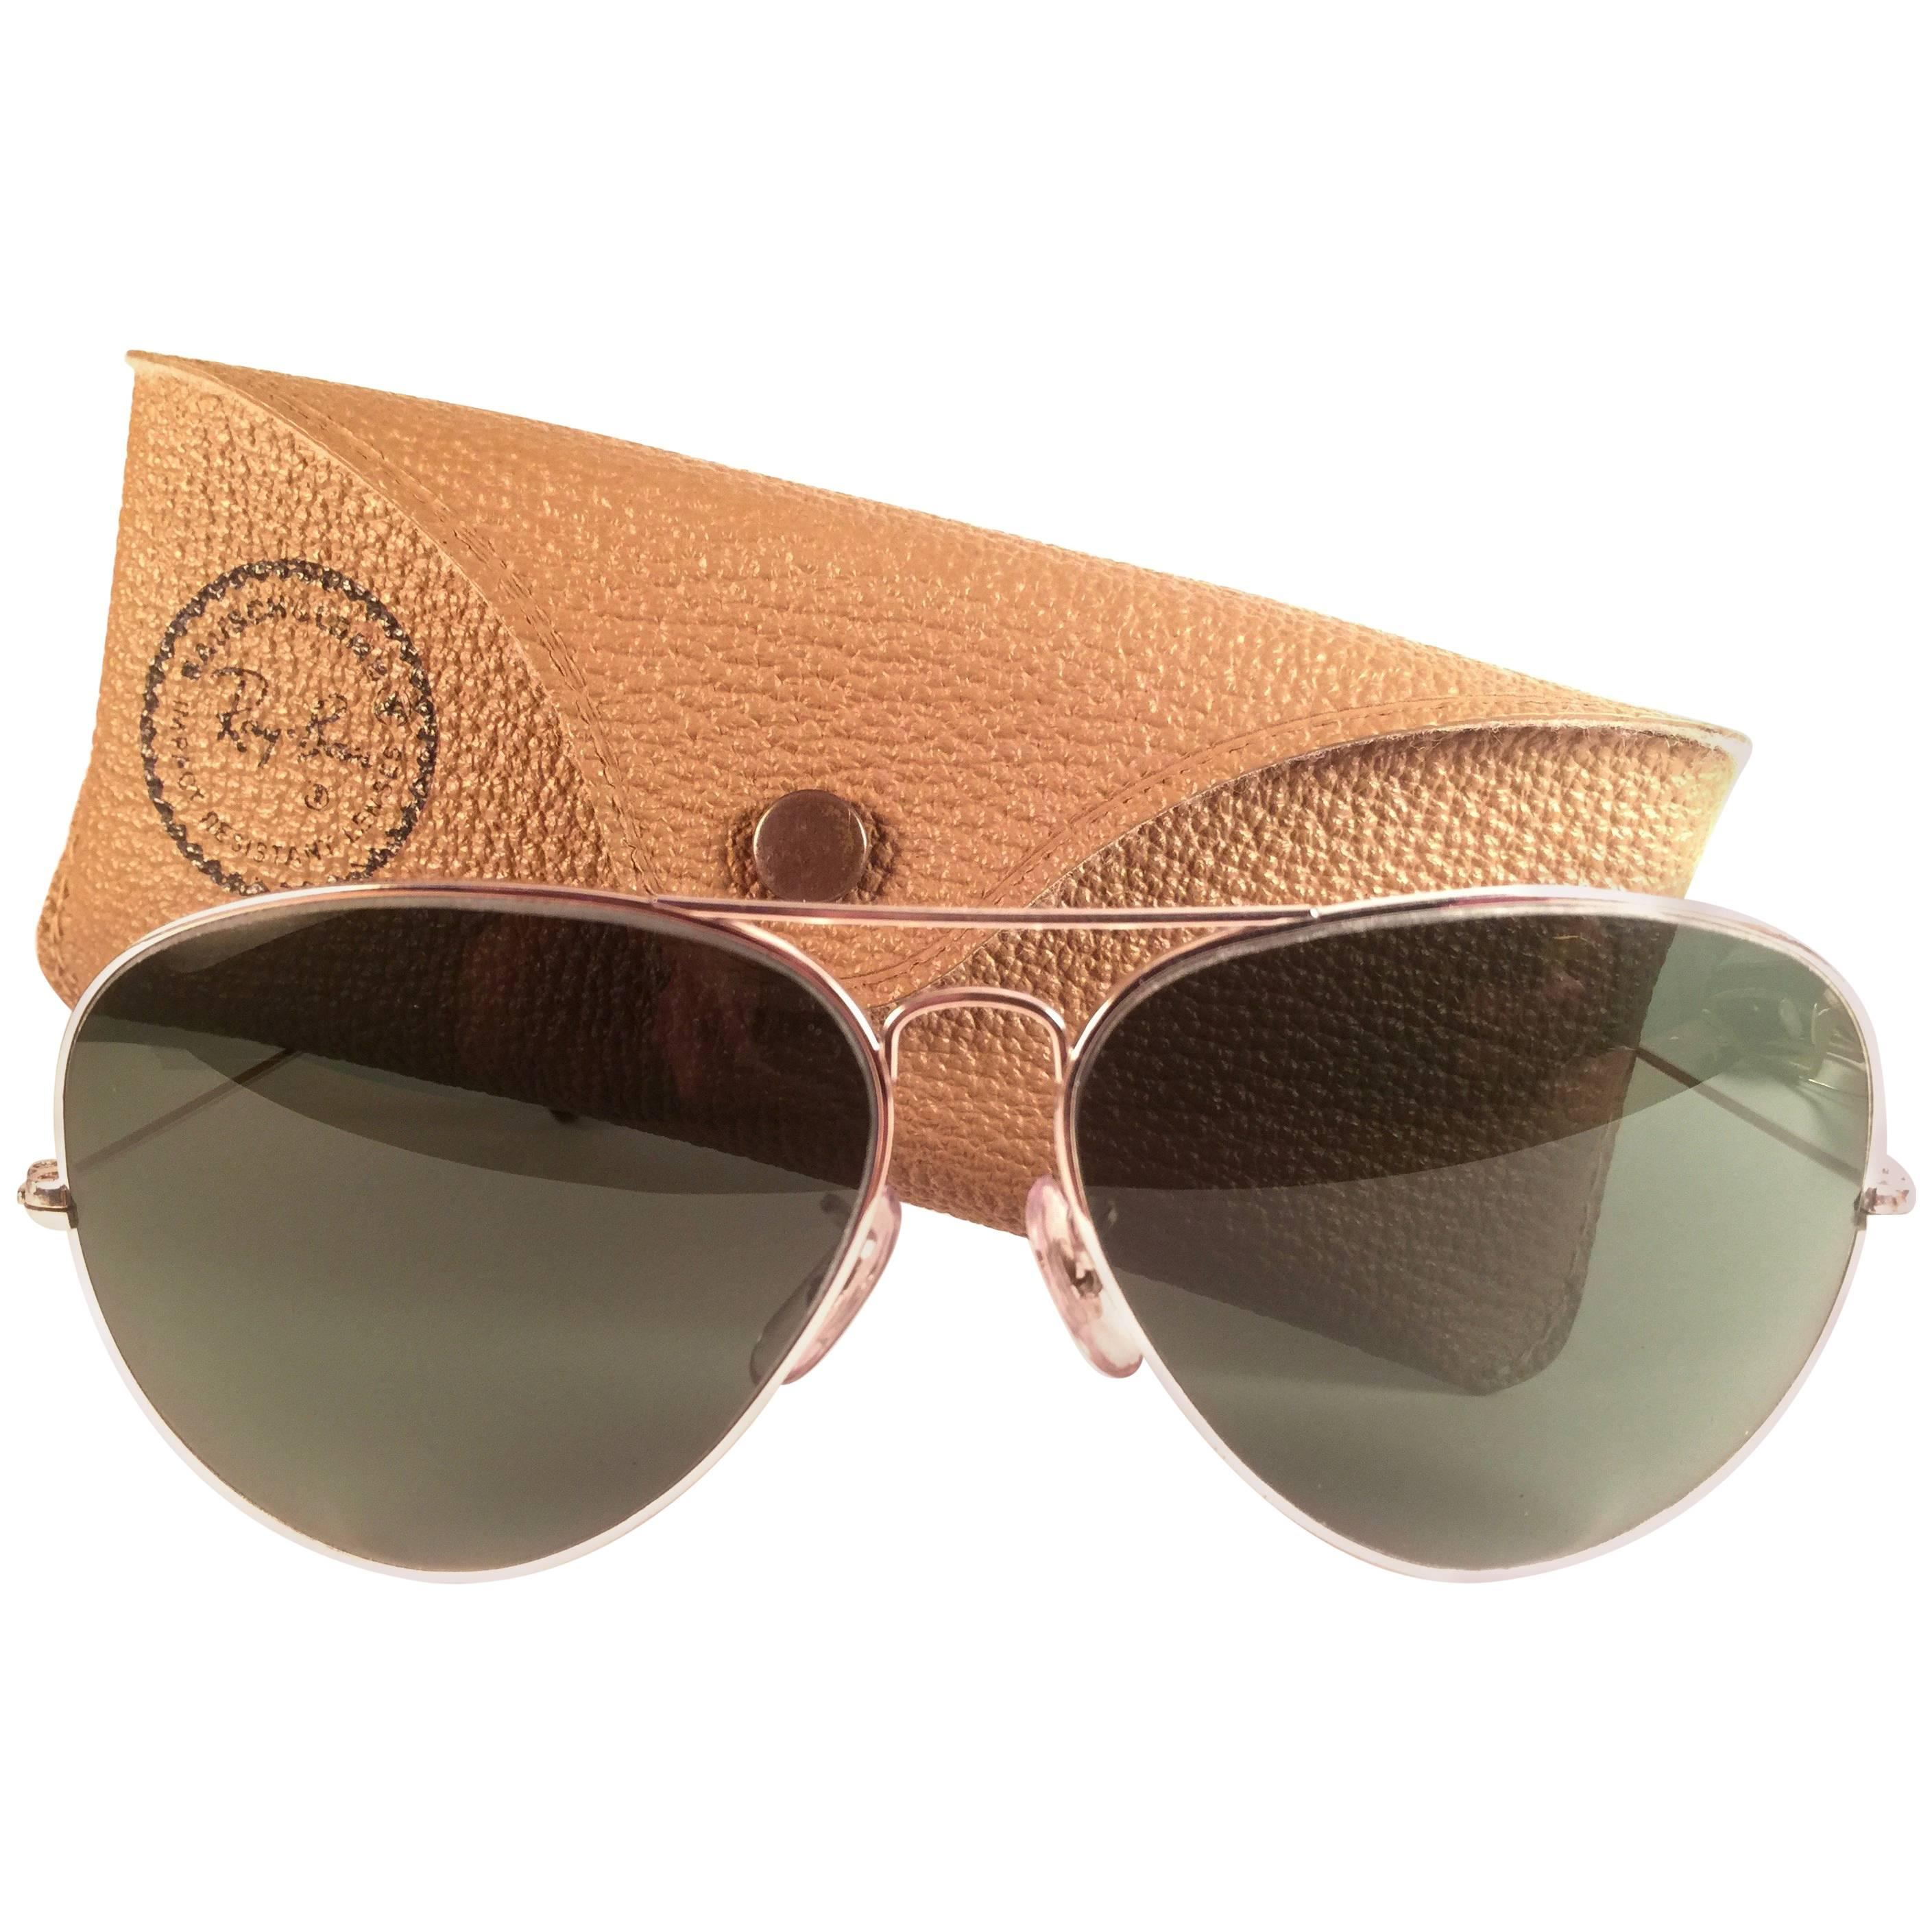 961fb452bef closeout ray ban aviator brown lens b4be4 ac364  low cost new vintage ray  ban aviator 62mm white gold grey g15 lenses bl sunglasses for